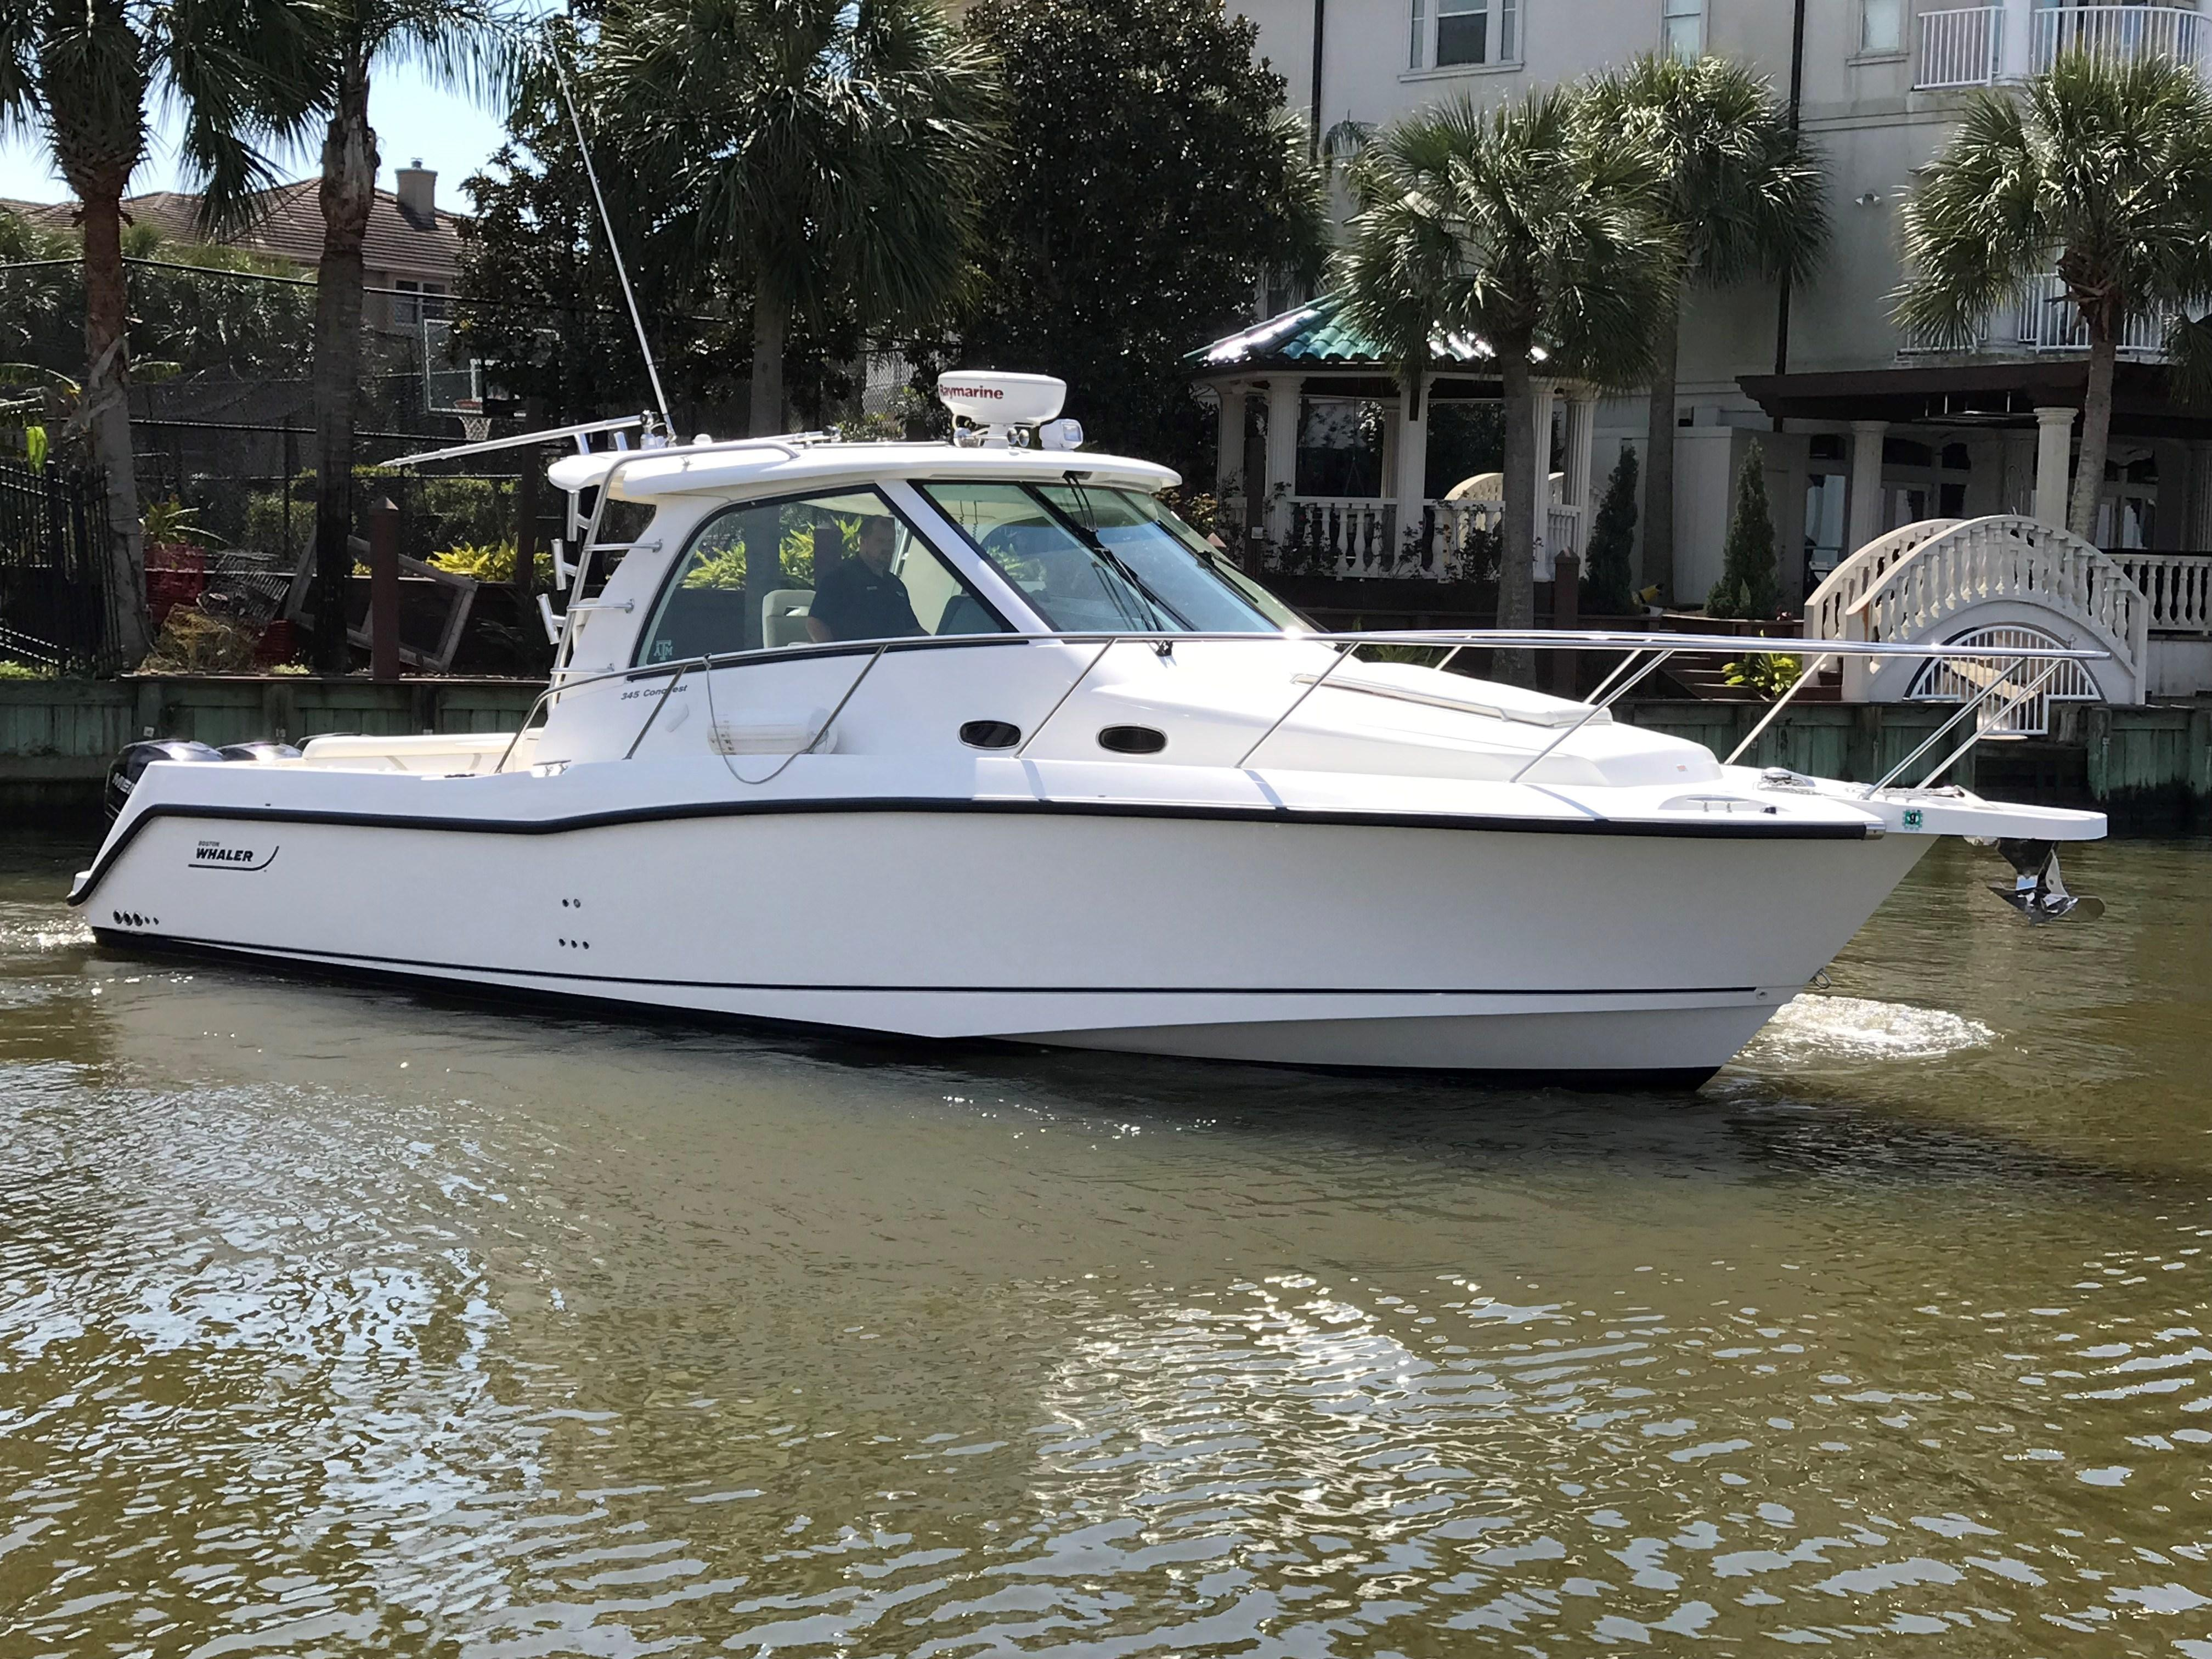 Boston Whaler Boats for Sale Ranging from $100,000 to